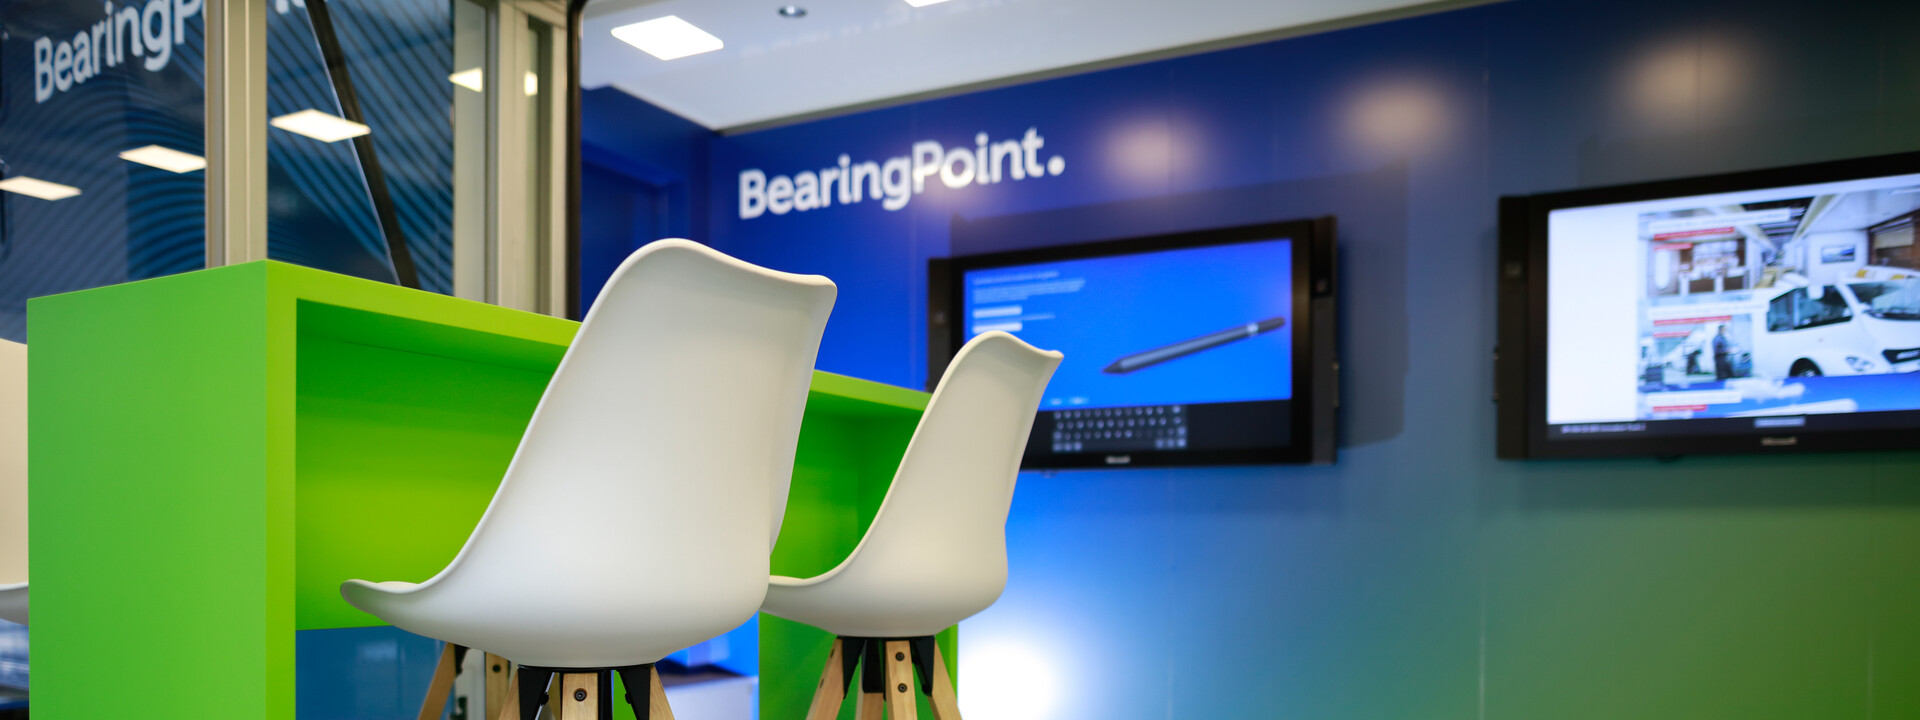 BearingPoint-4-interior.jpg